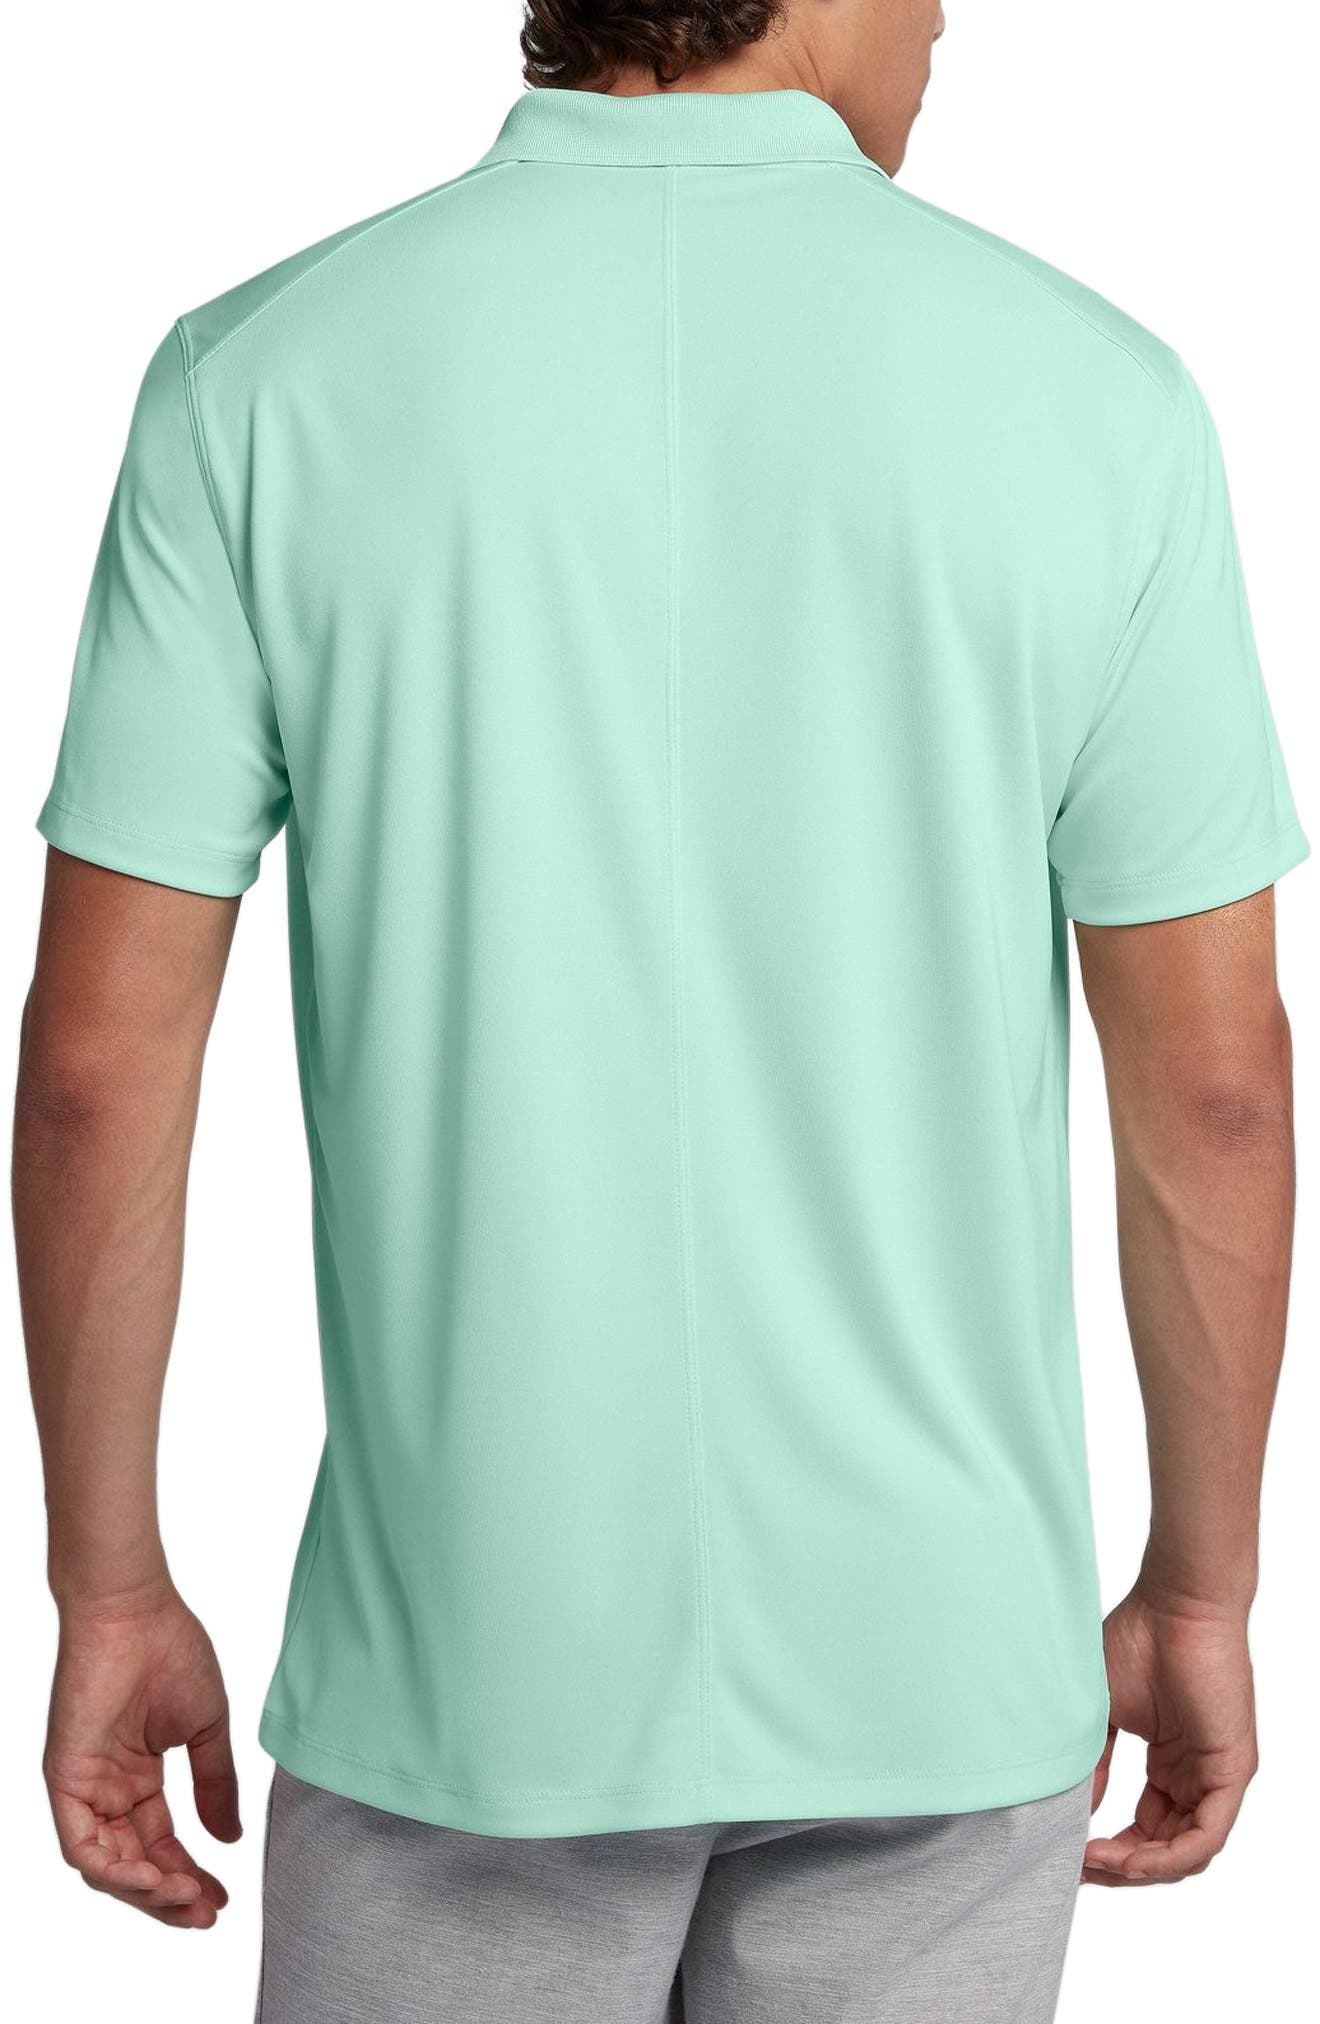 Dry Victory Golf Polo,                             Alternate thumbnail 2, color,                             IGLOO/ FLT SILVER